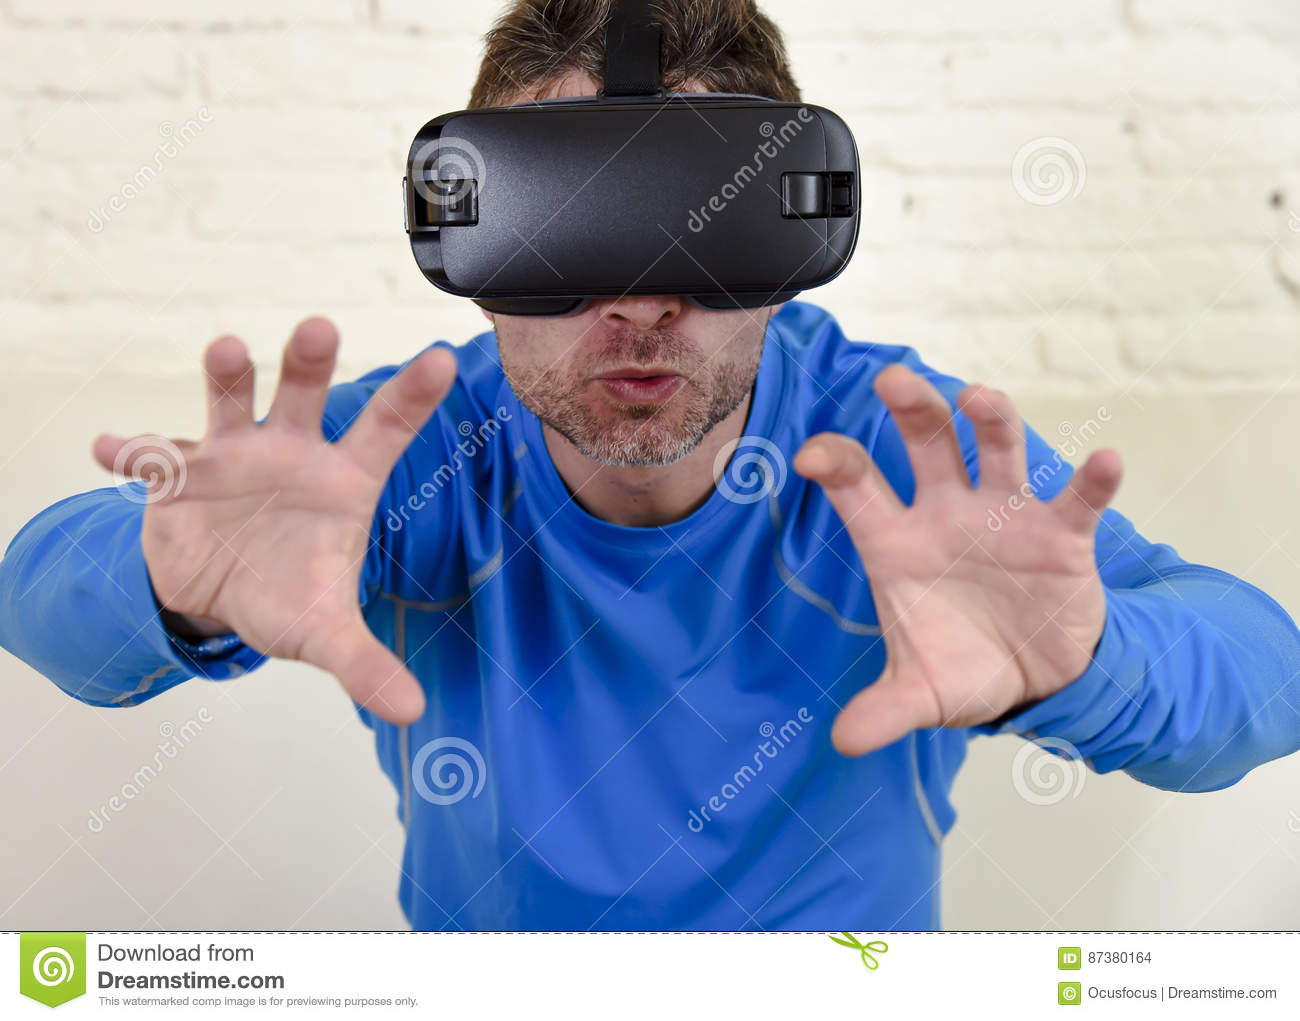 Happy man at home living room sofa couch excited using 3d goggles watching 360 virtual reality